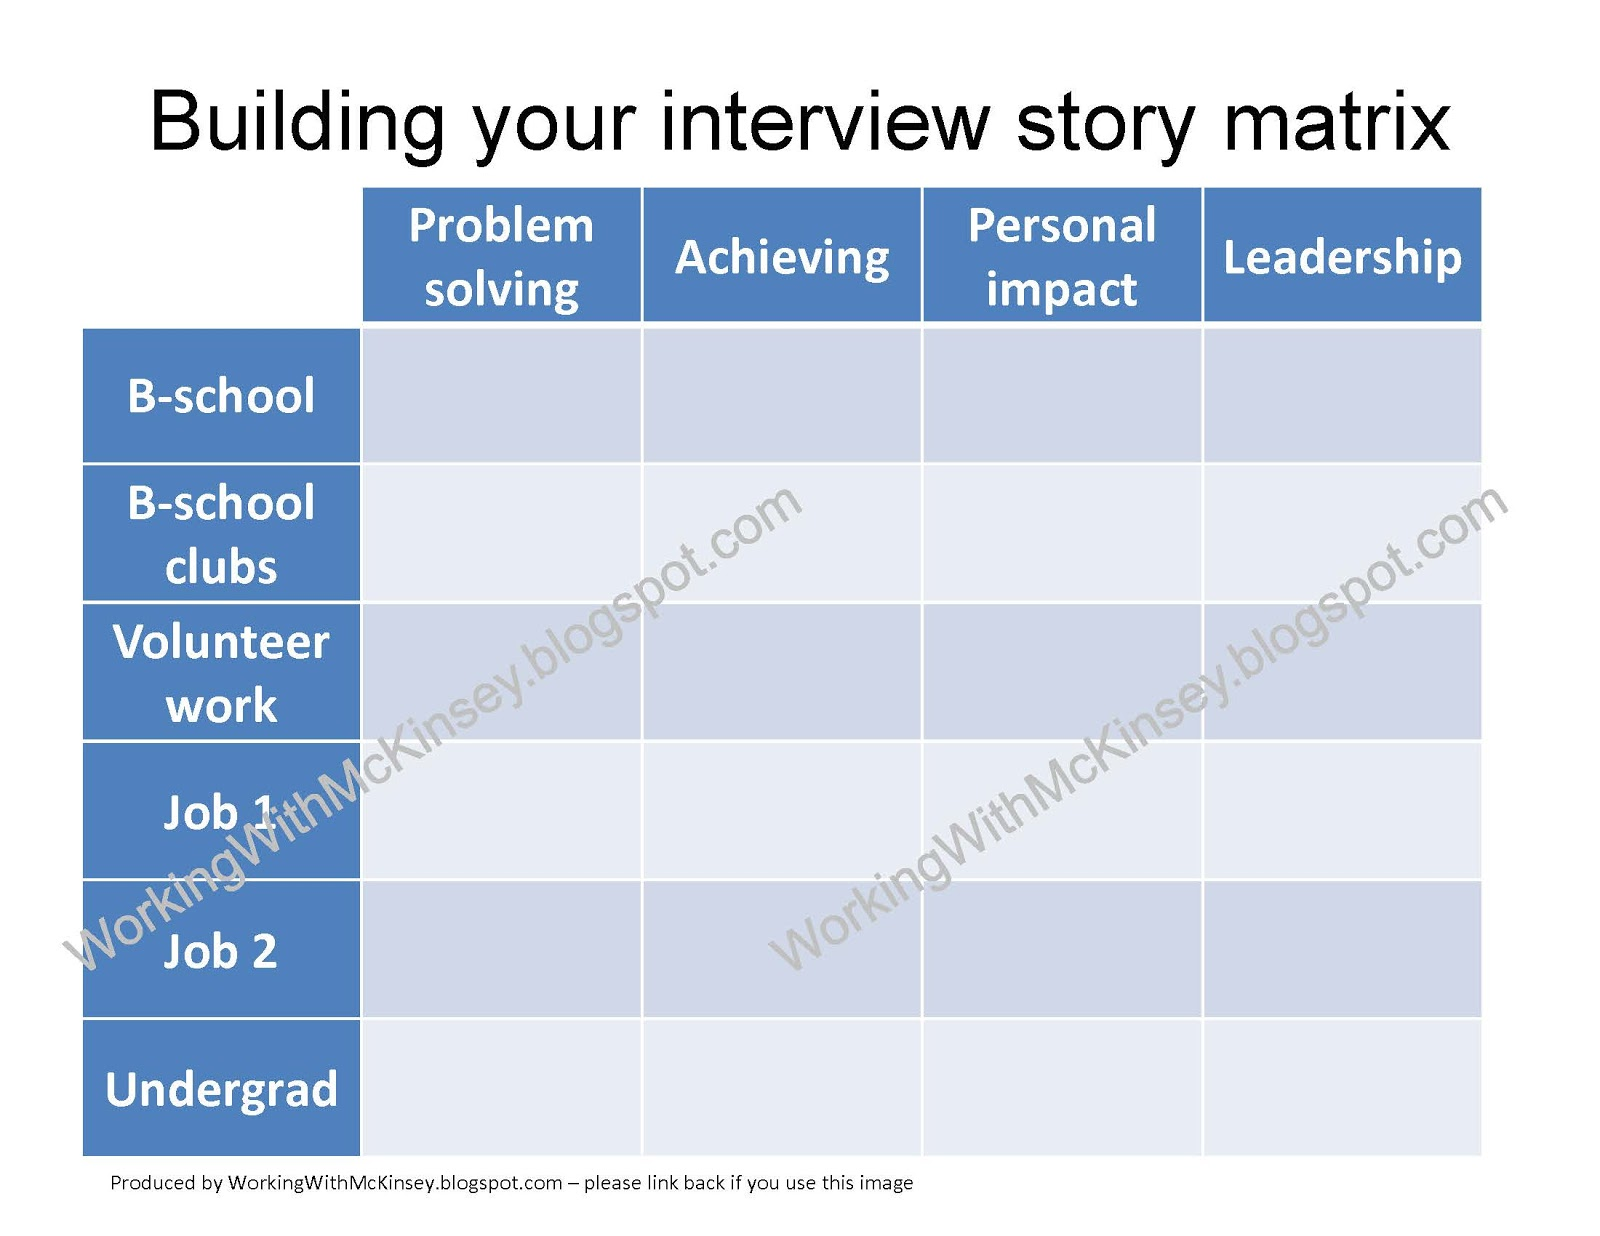 Working With McKinsey: McKinsey interviews: PEI and 5 tips